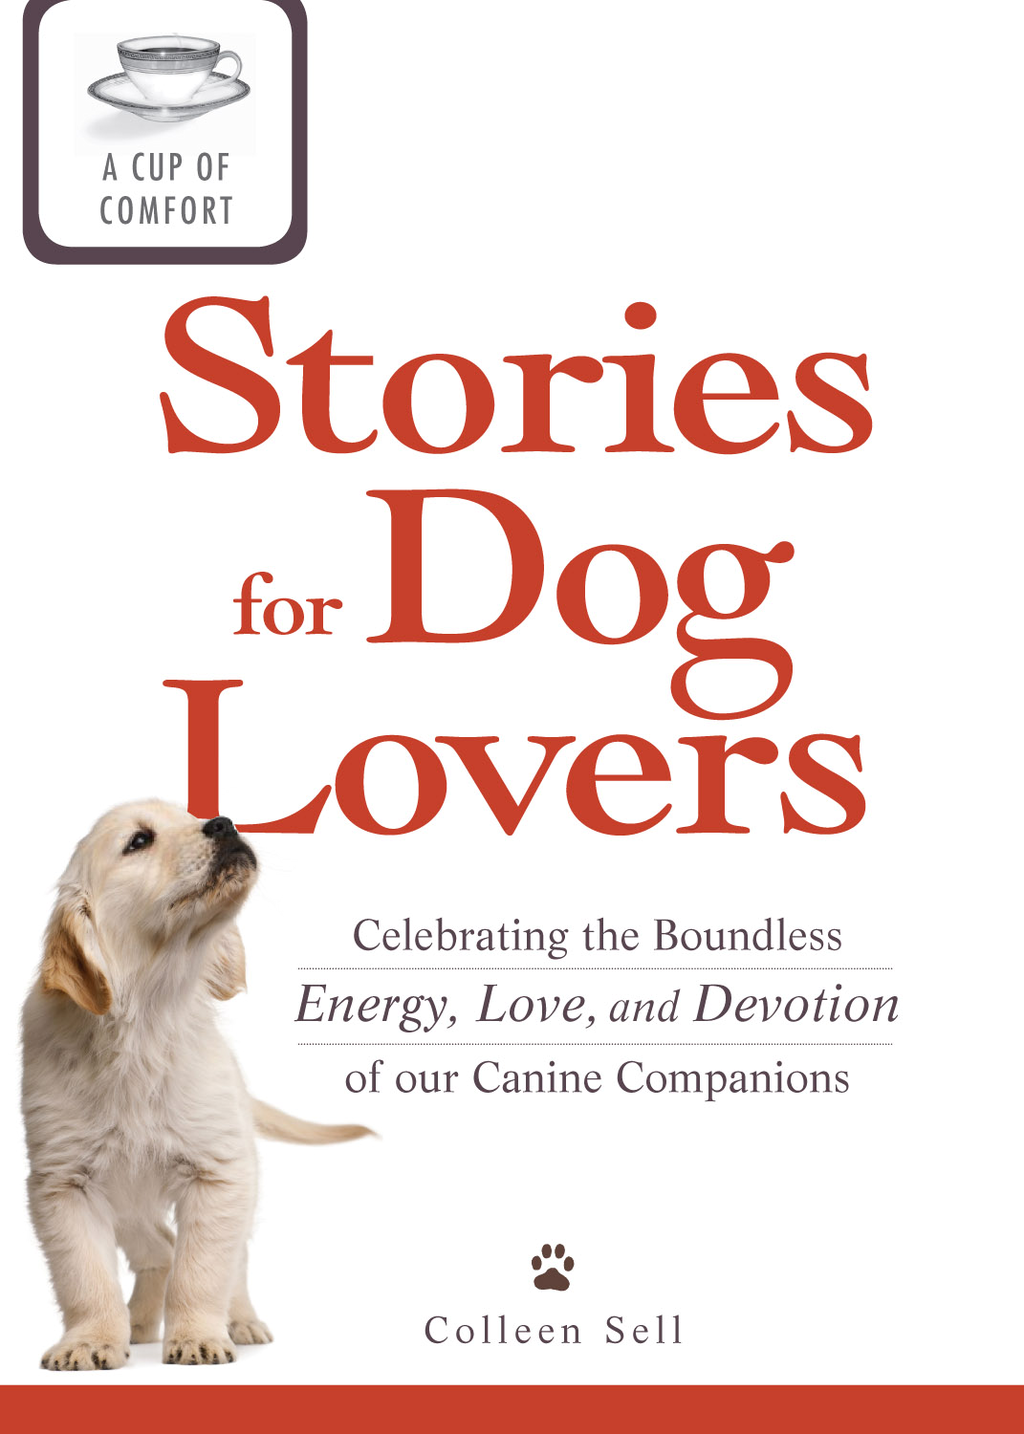 A Cup of Comfort Stories for Dog Lovers: Celebrating the boundless energy, love, and devotion of our canine companions By: Colleen Sell